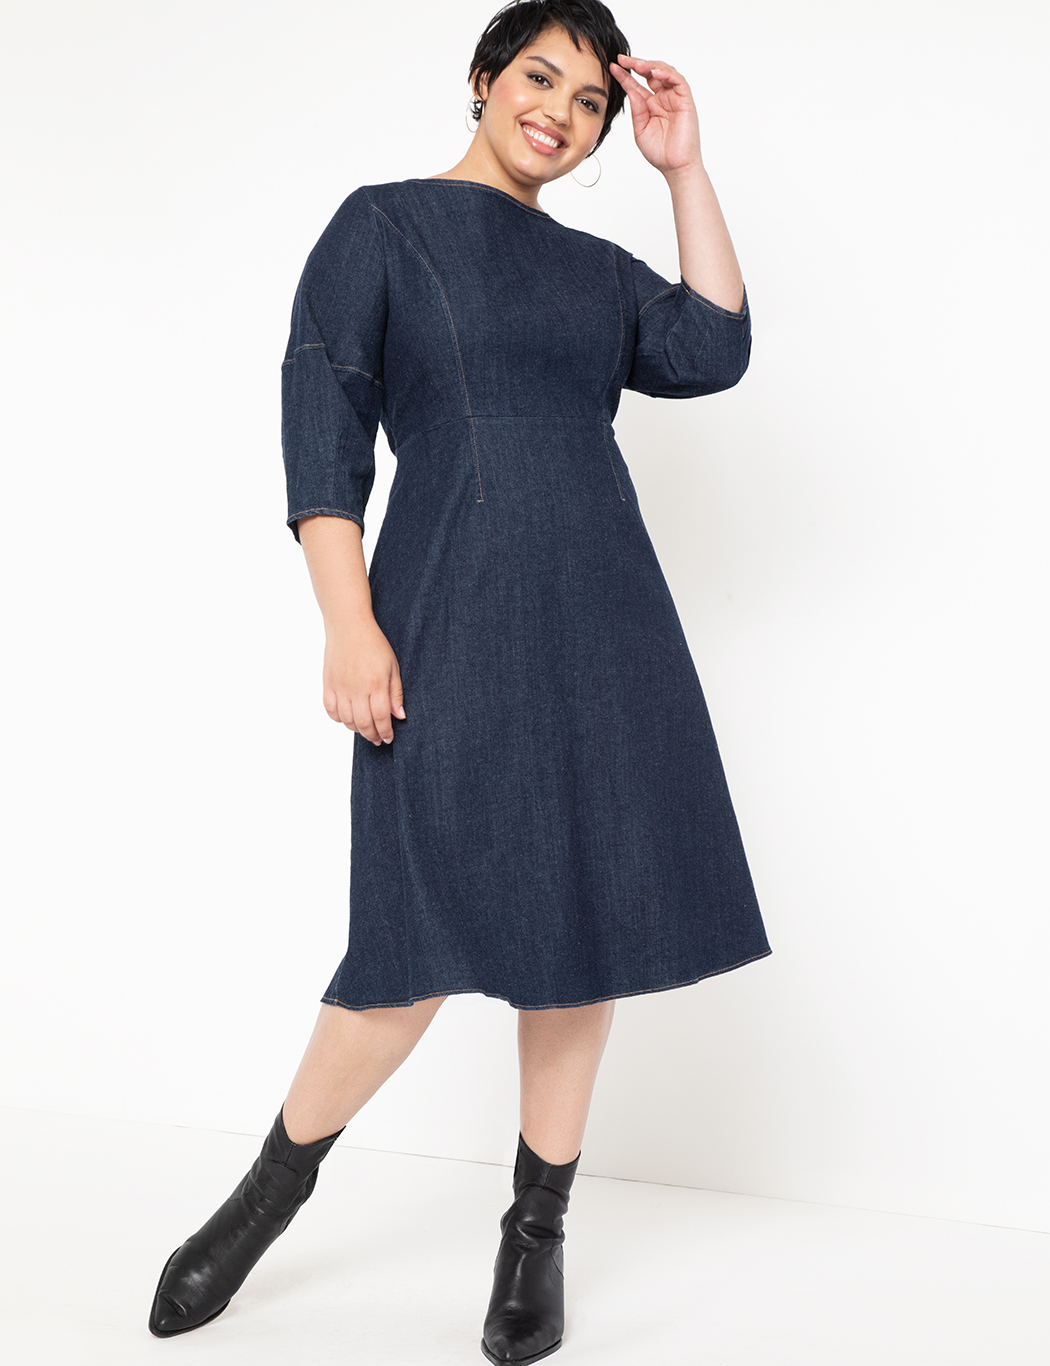 A-Line Lantern Sleeve Denim Dress